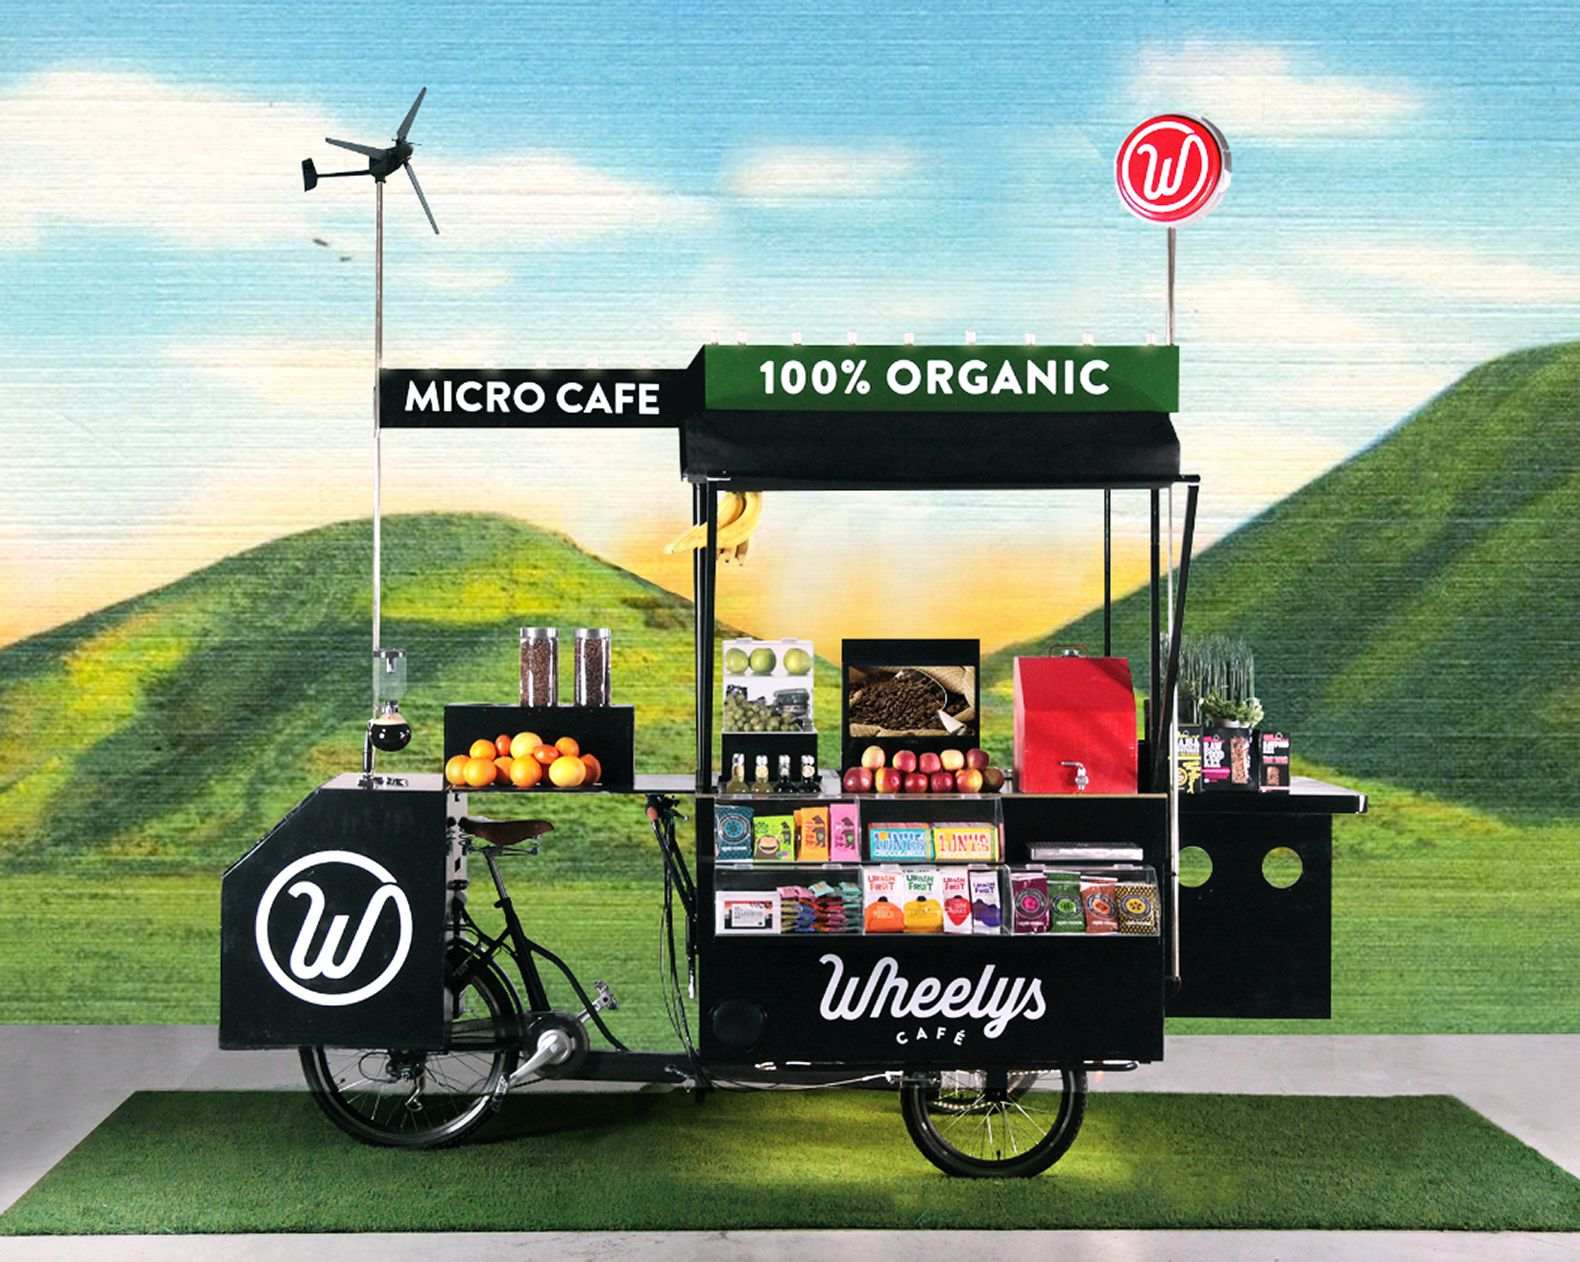 New wheelys 4 bike caf cleans smoggy air and turns coffee grounds into fertilizer